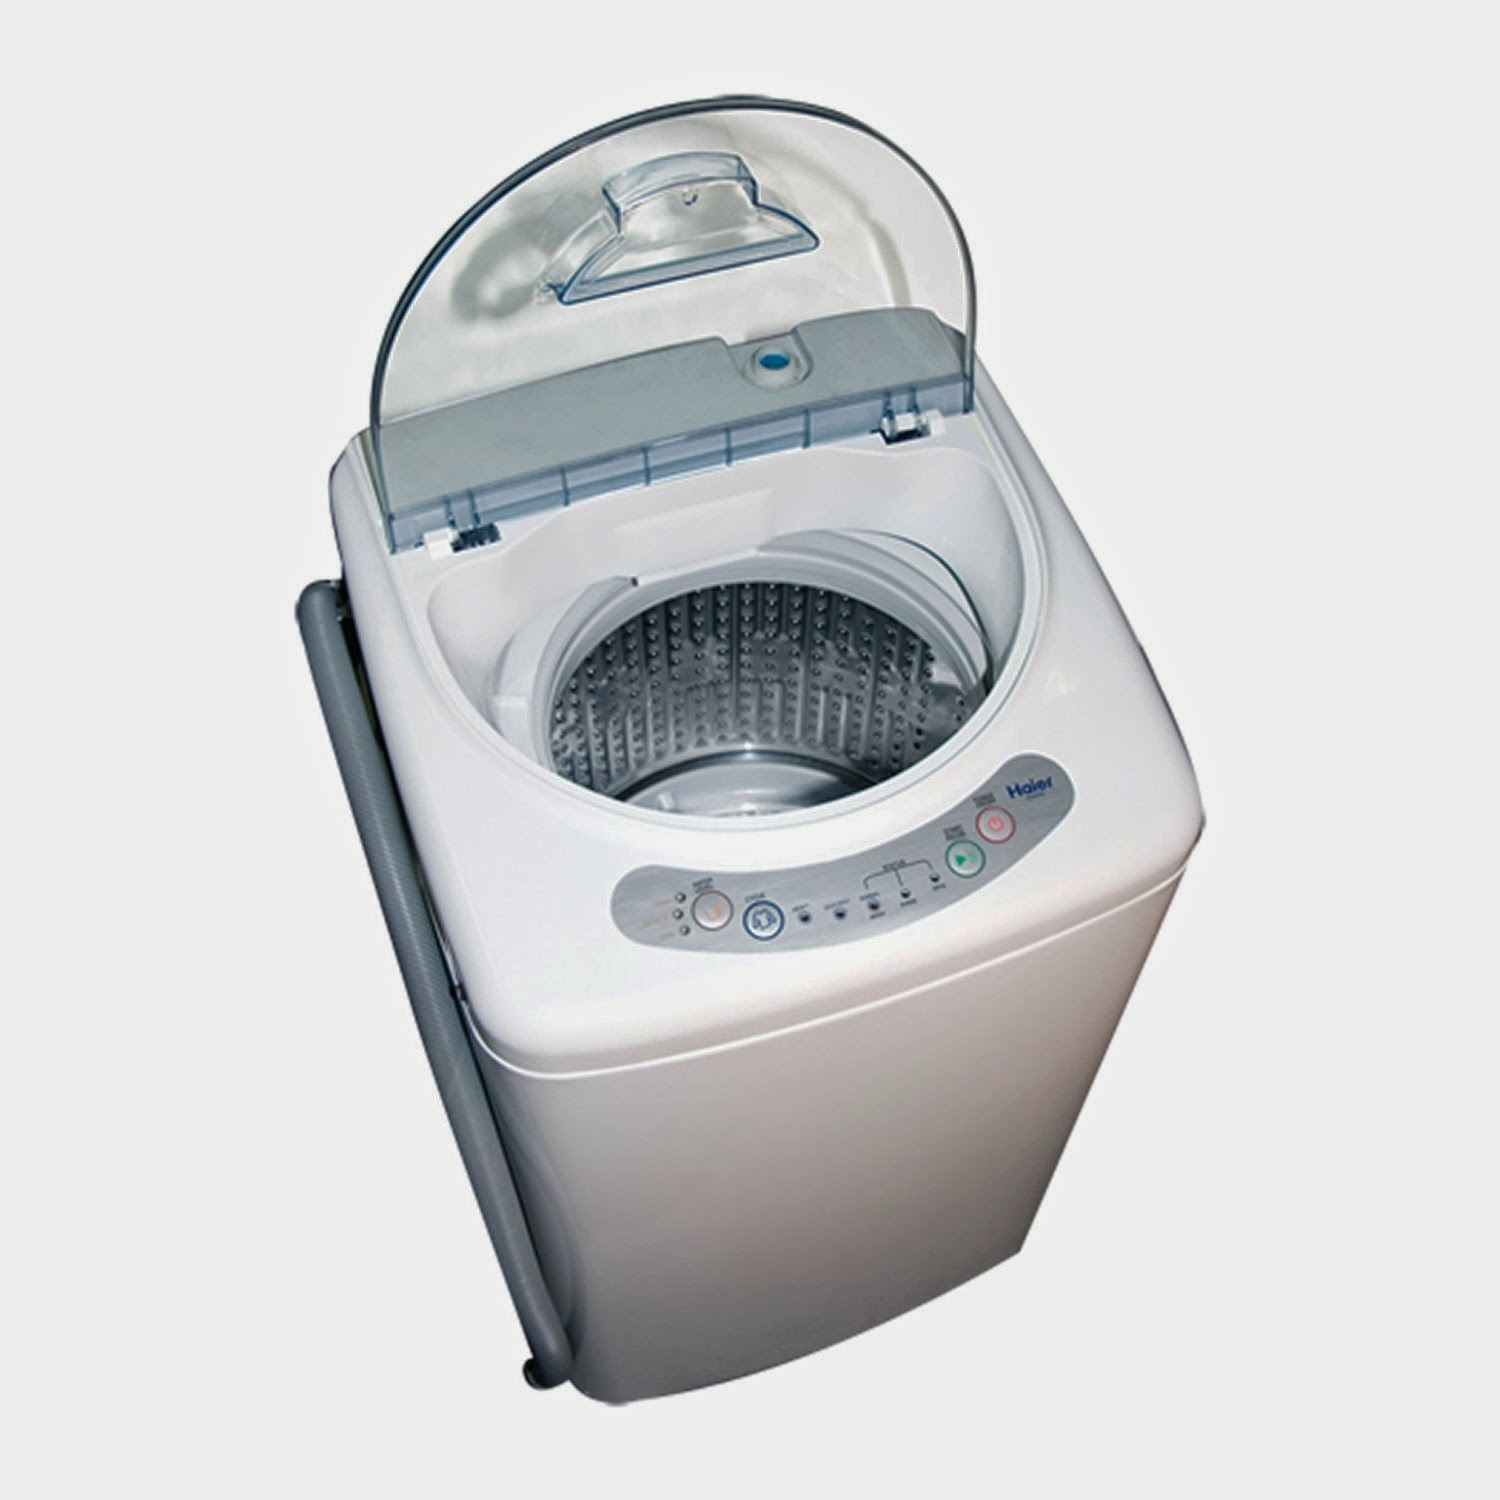 Washer Dryer Combo Apartment Size - TheApartment